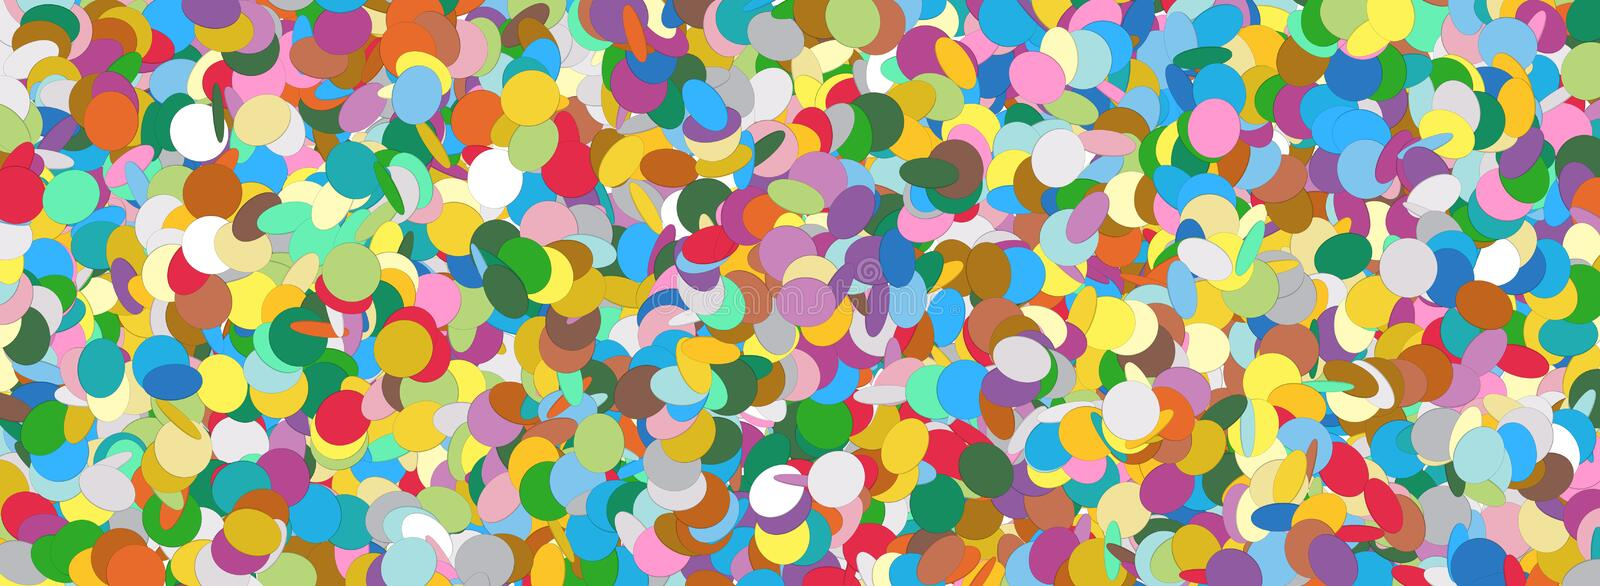 Confetti Panorama Background Template Texture vector illustration